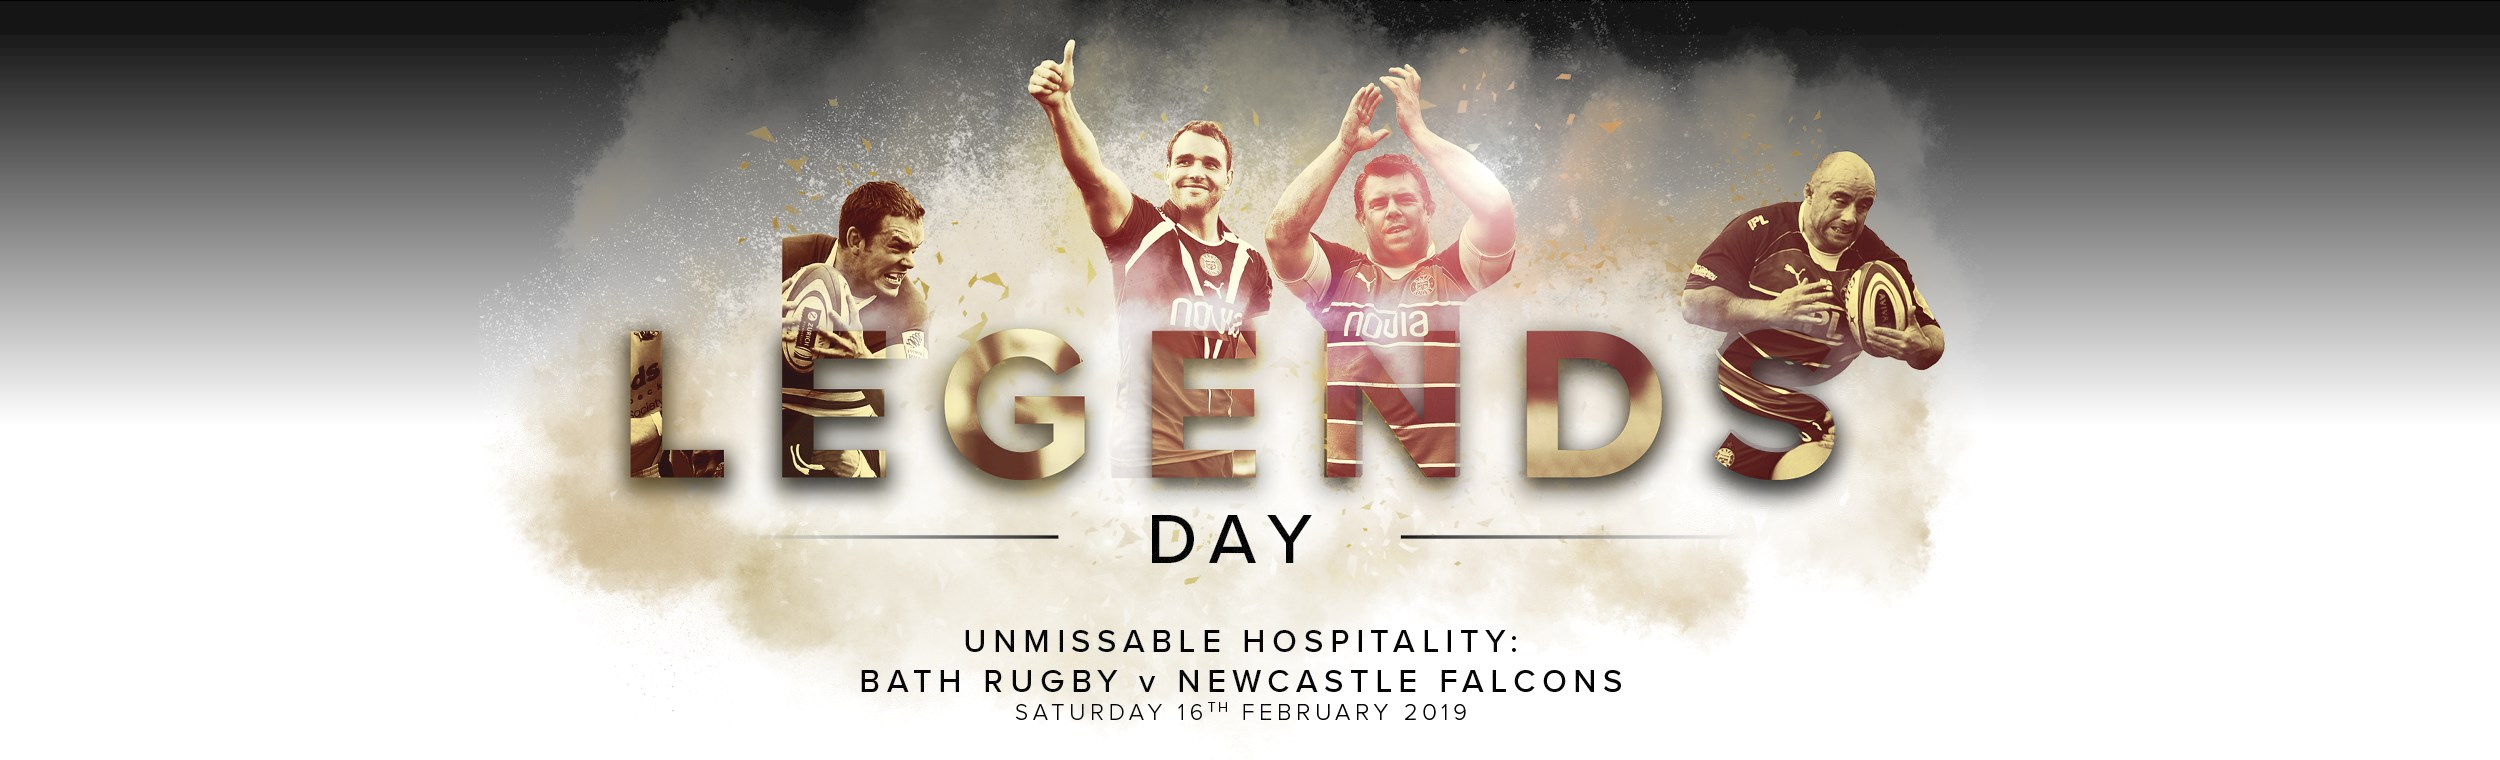 Bath Rugby Legends Day